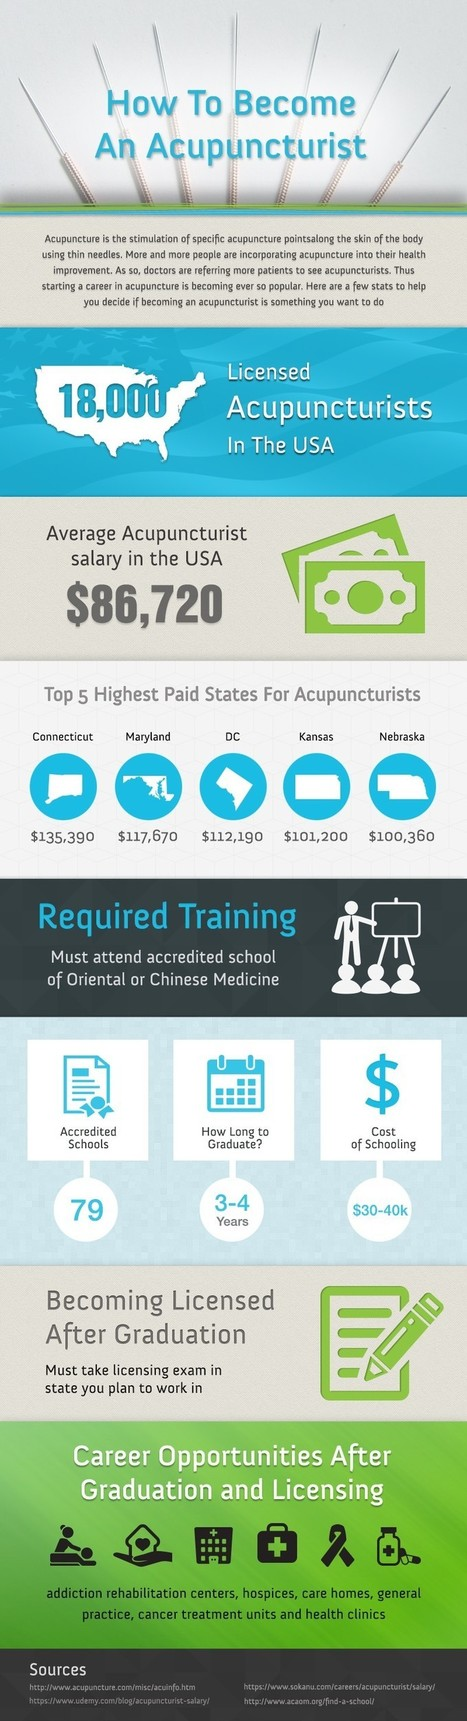 How to become an Acupuncturists & Highest Paid States | All Infographics | Scoop.it